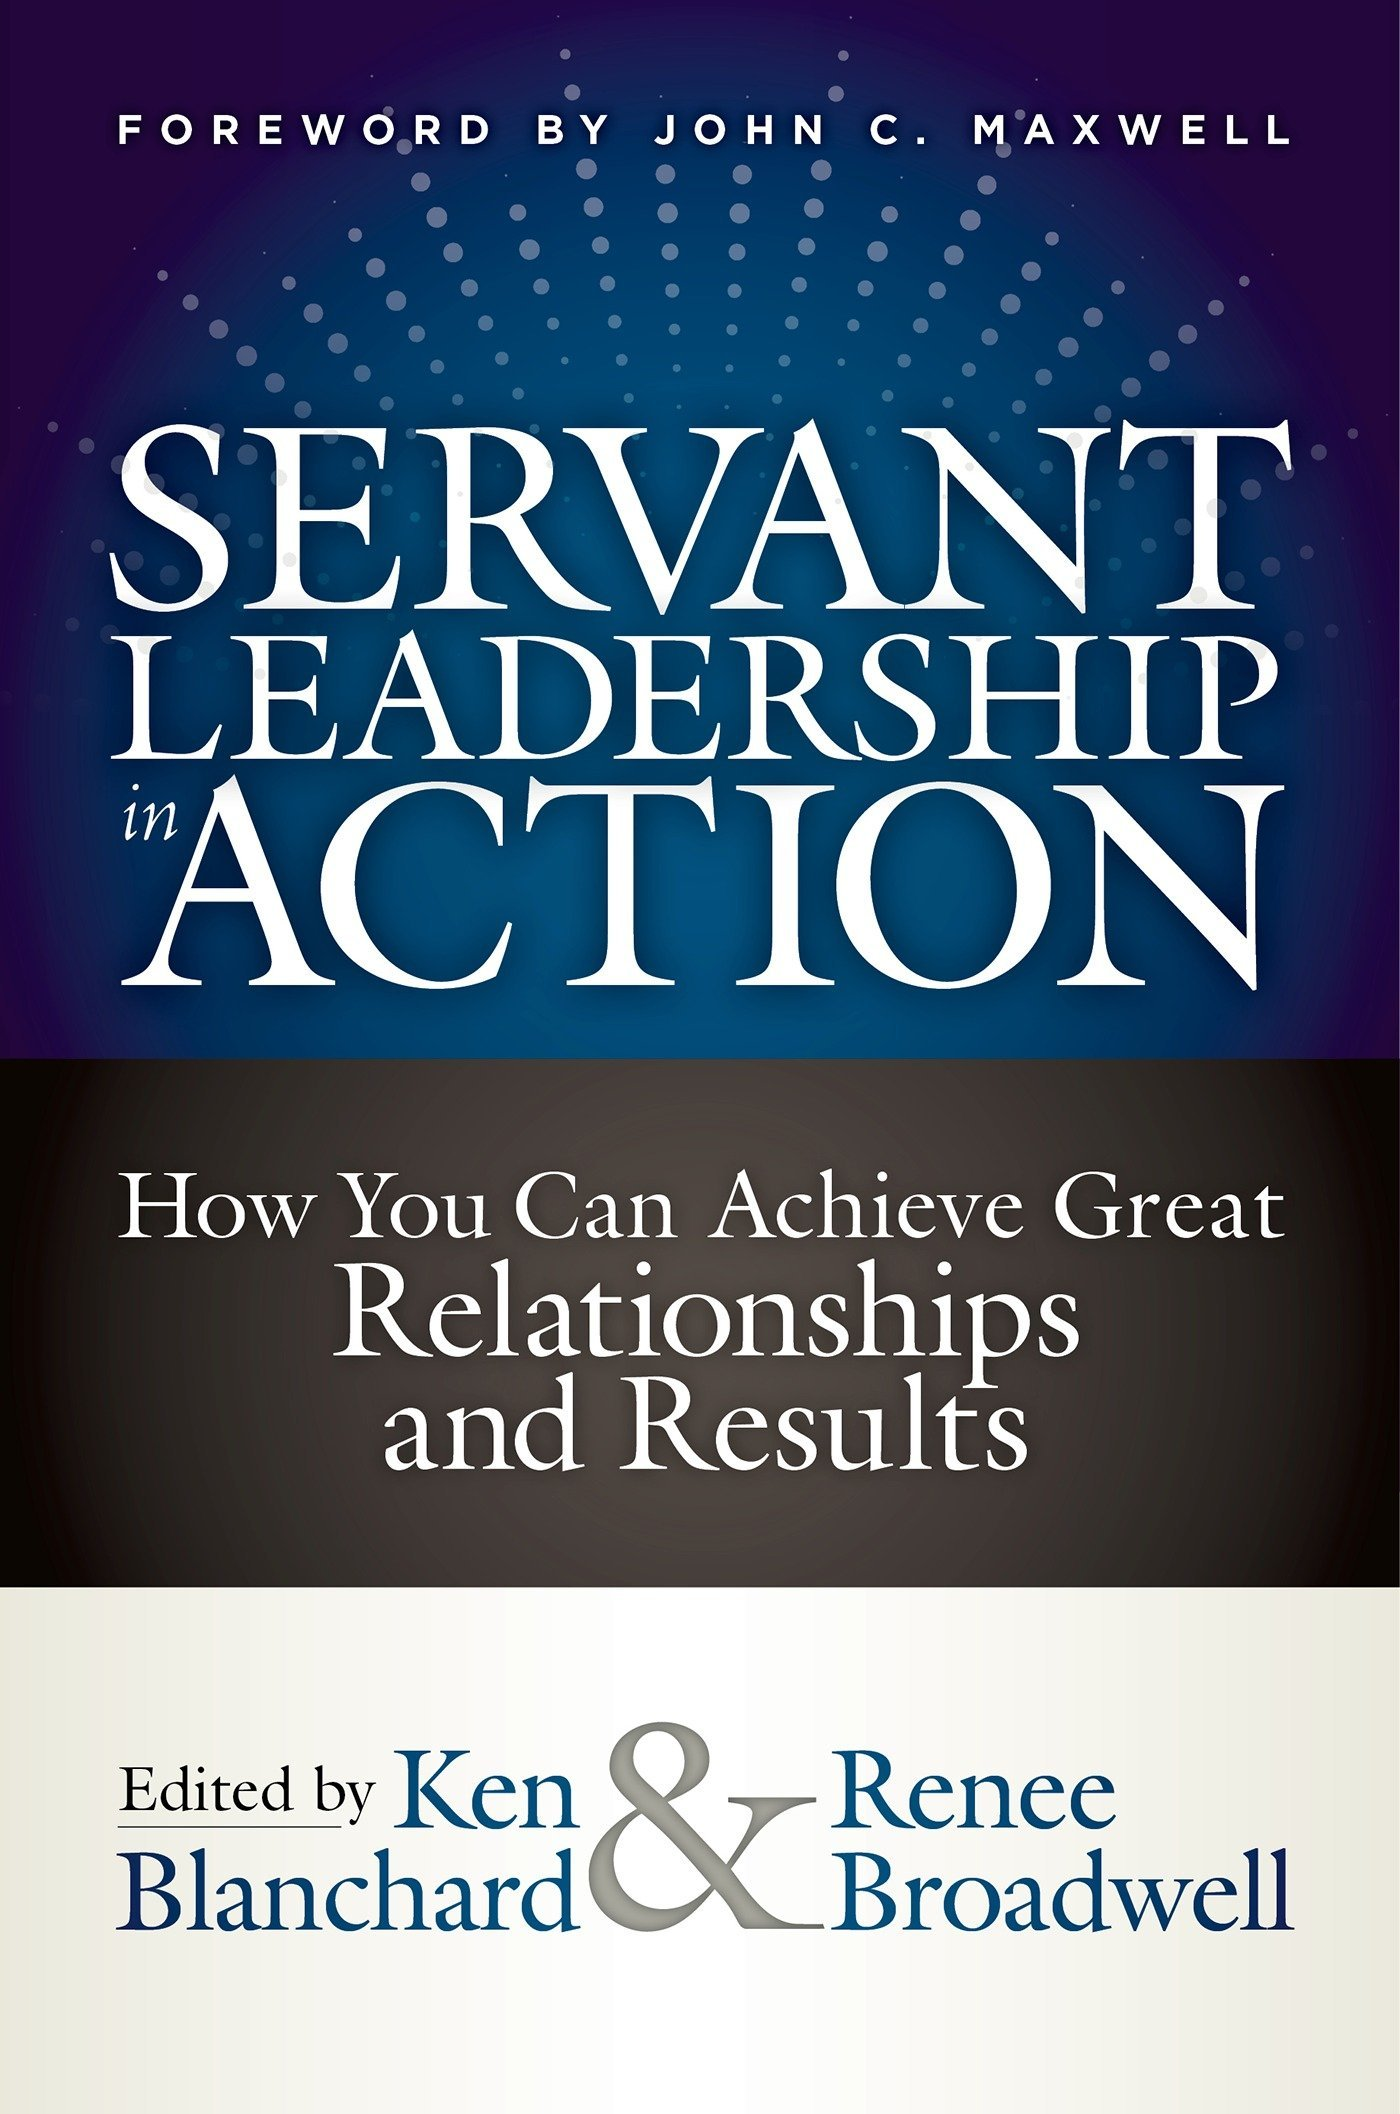 Servant Leadership in Action: How You Can Achieve Great Relationships and  Results: Ken Blanchard, Renee Broadwell: 9781523093960: Amazon.com: Books